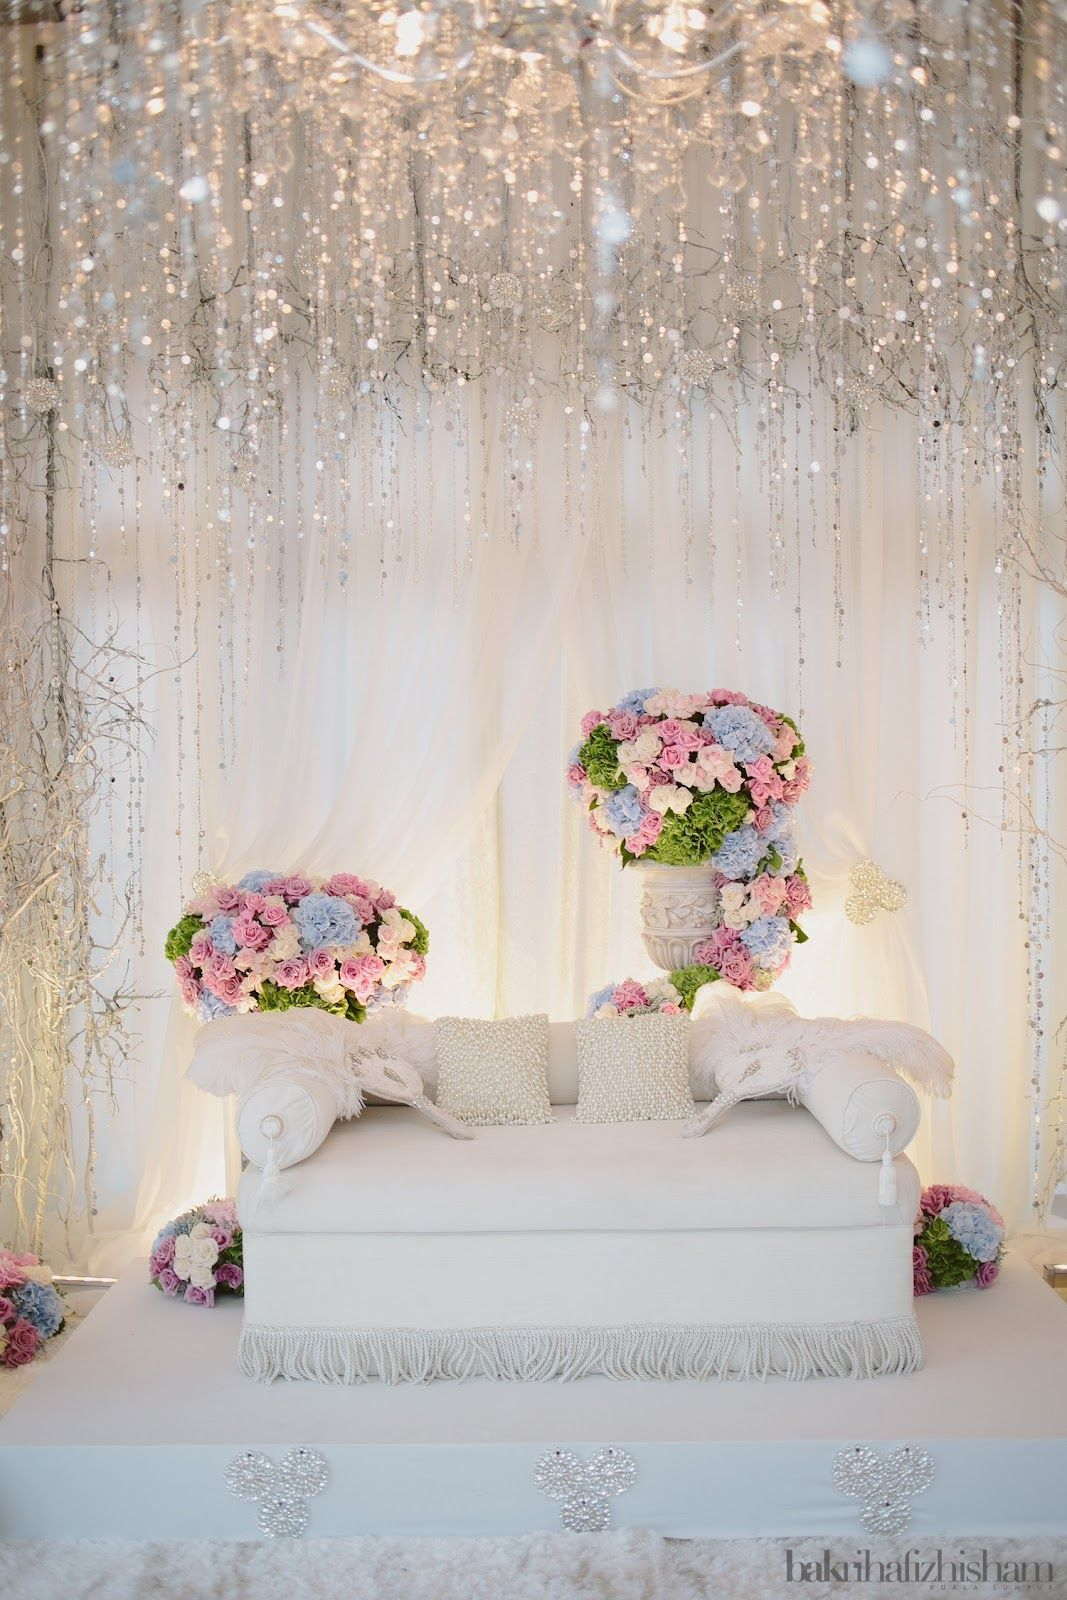 Almost ideal pelamin for wedding (minus the flower arrangements ...